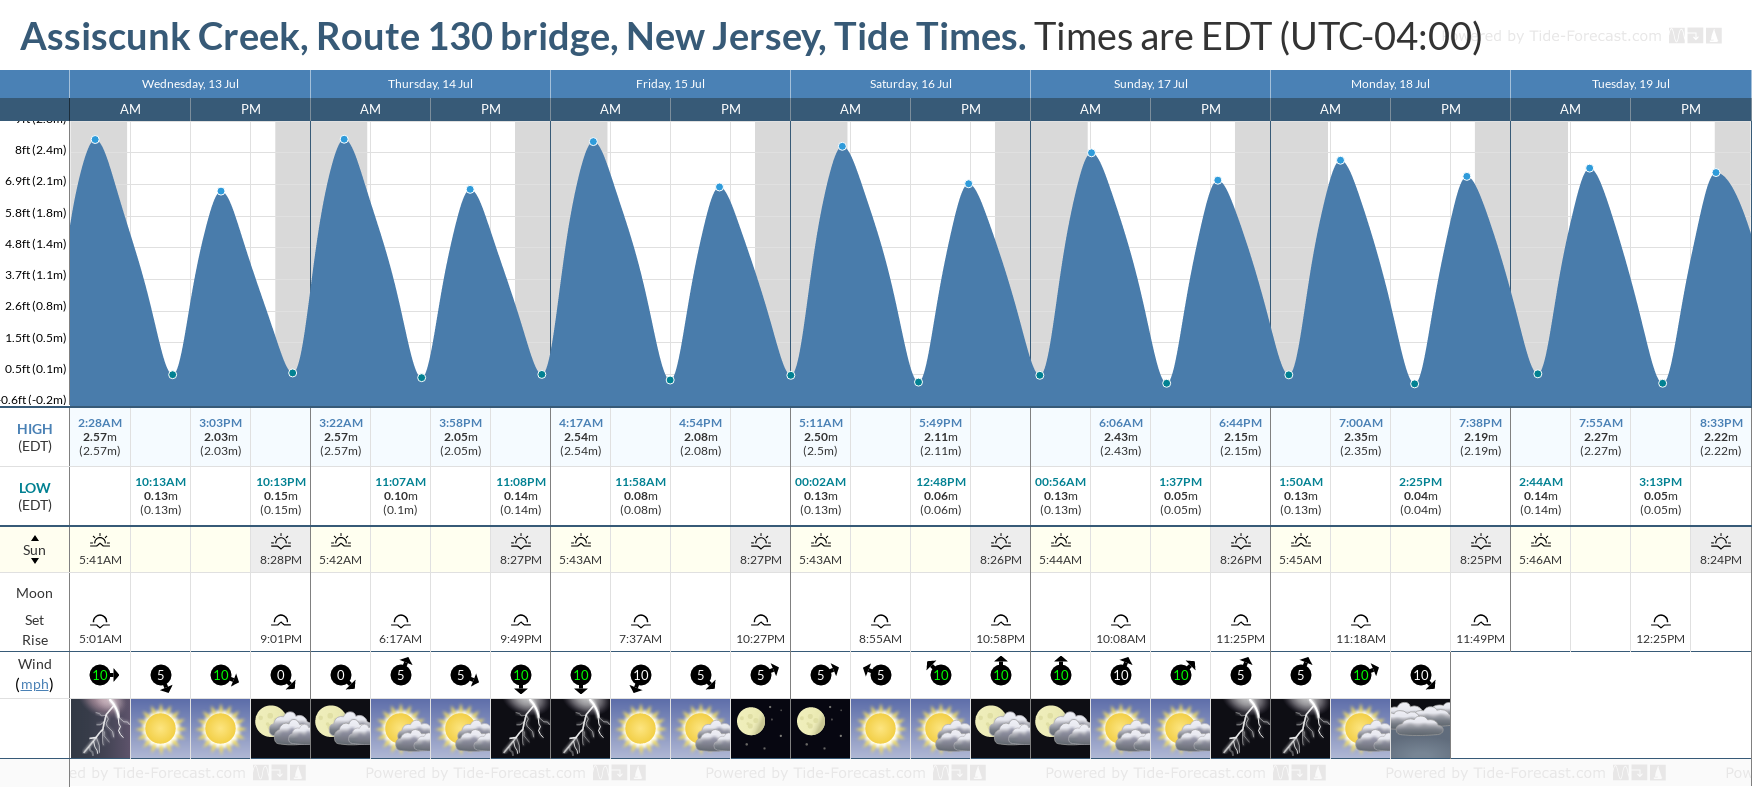 Assiscunk Creek, Route 130 bridge, New Jersey Tide Chart including high and low tide tide times for the next 7 days